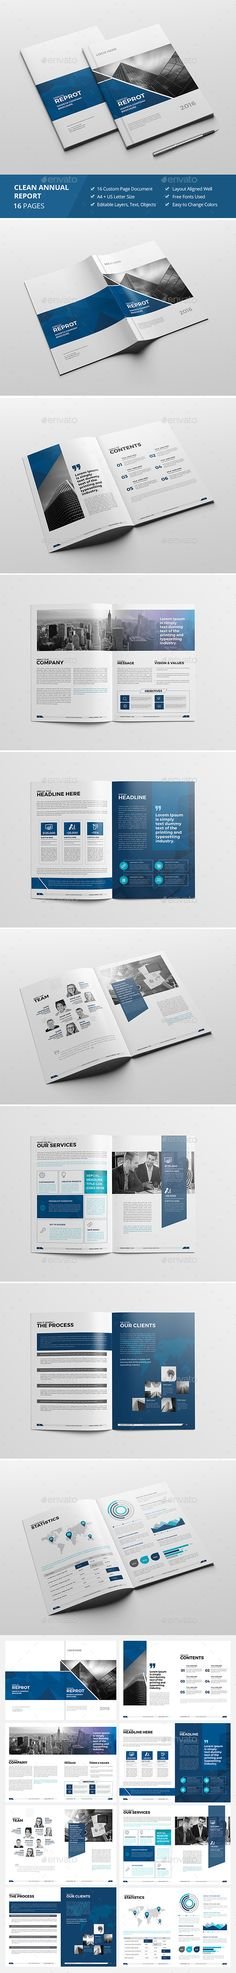 Haweya Modern Corporate Annual Report  Design Template - Corporate Brochures Template InDesign INDD. Download here: https://graphicriver.net/item/haweya-modern-annual-report-/17721044?ref=yinkira